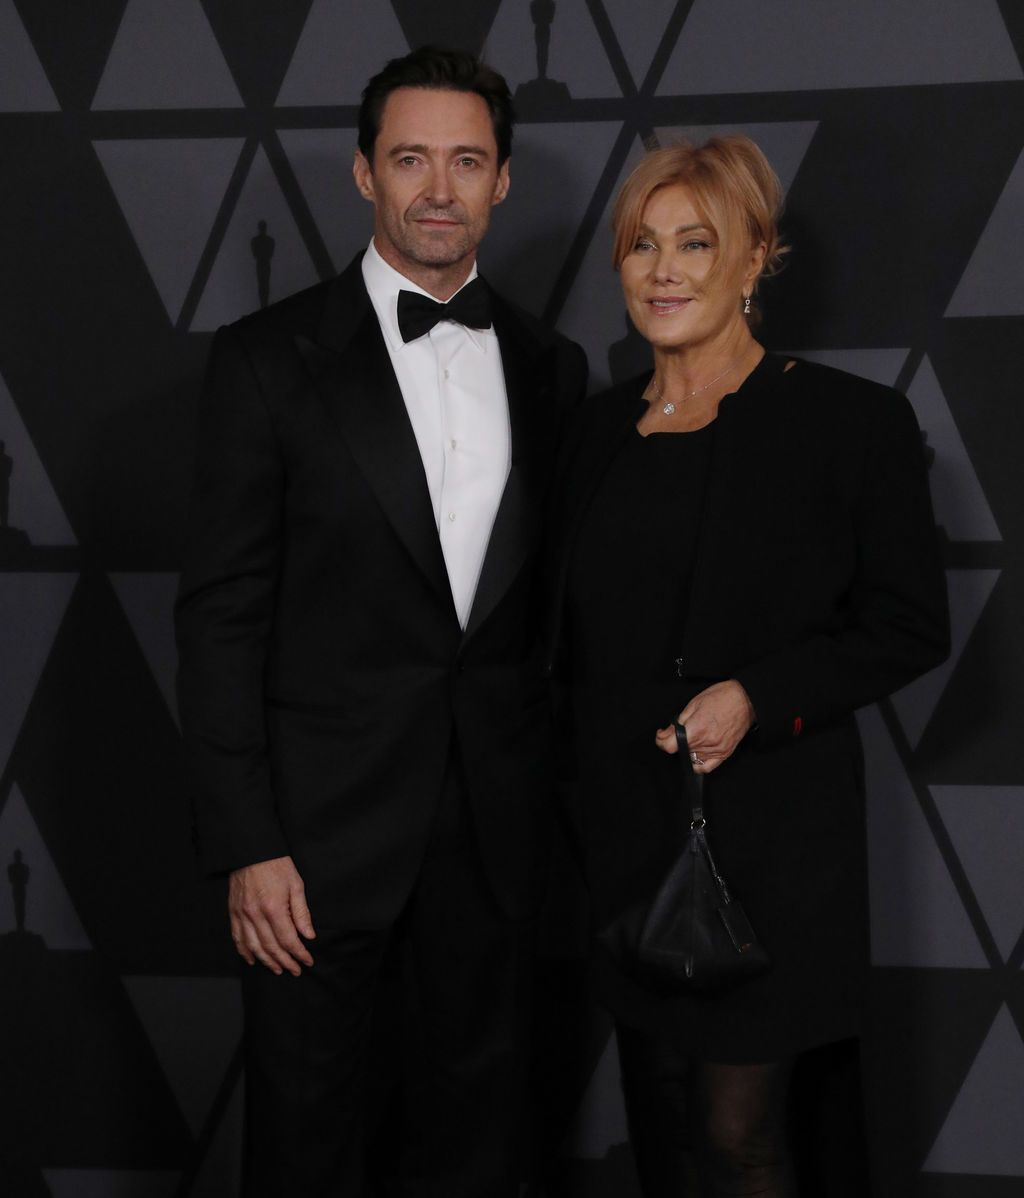 Hugh Jackman y su mujer, Deborra-lee Furness.